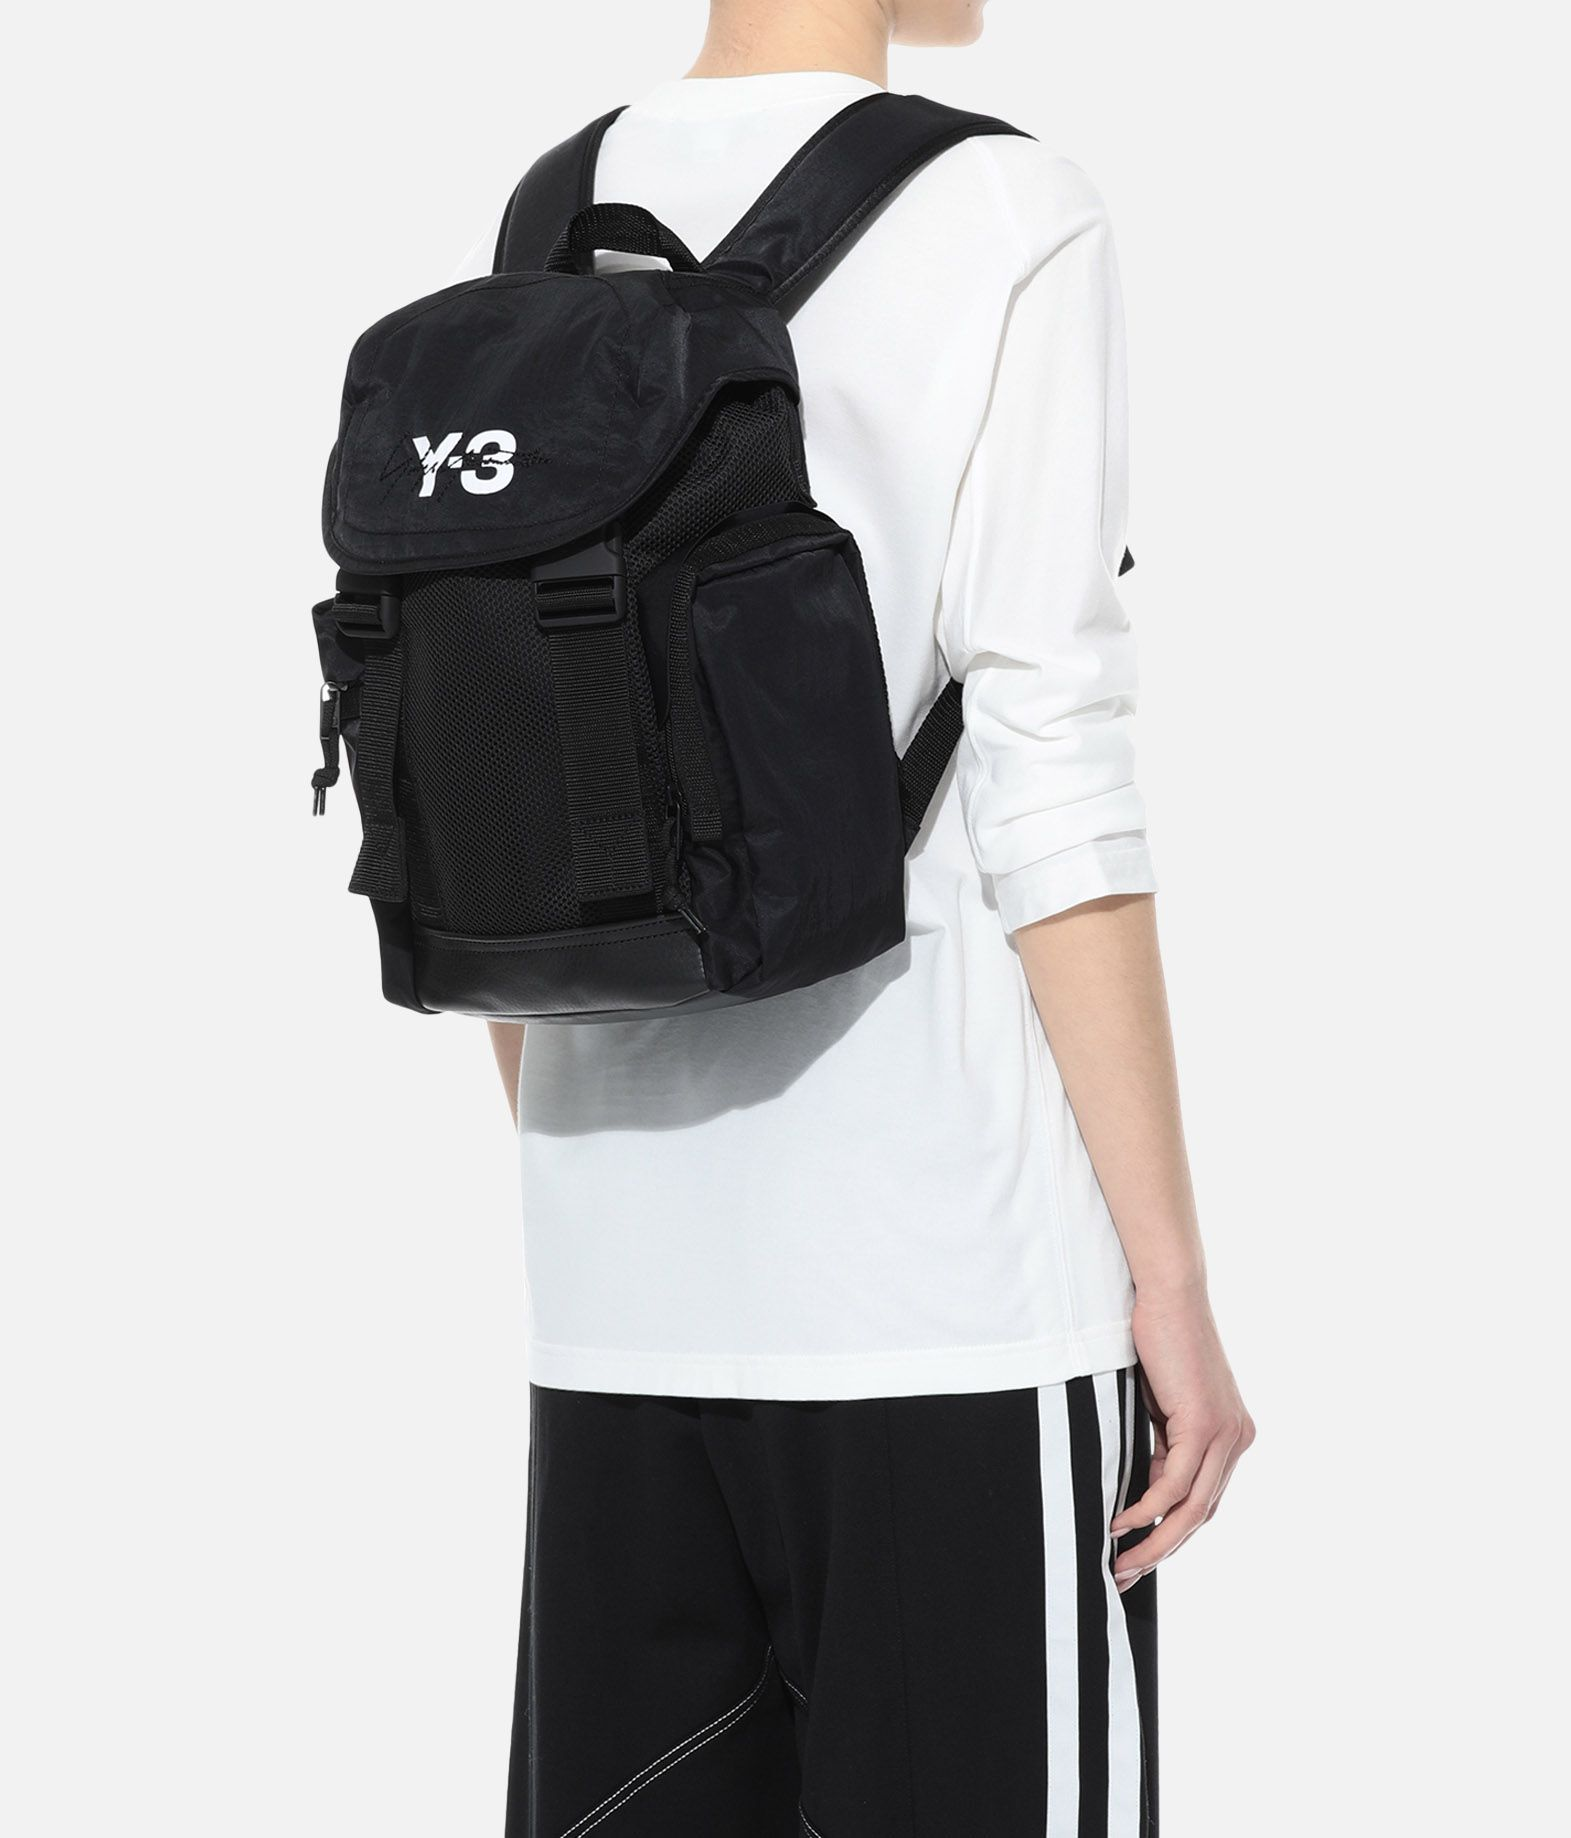 Y-3 Y-3 XS Mobility Bag Backpack E a